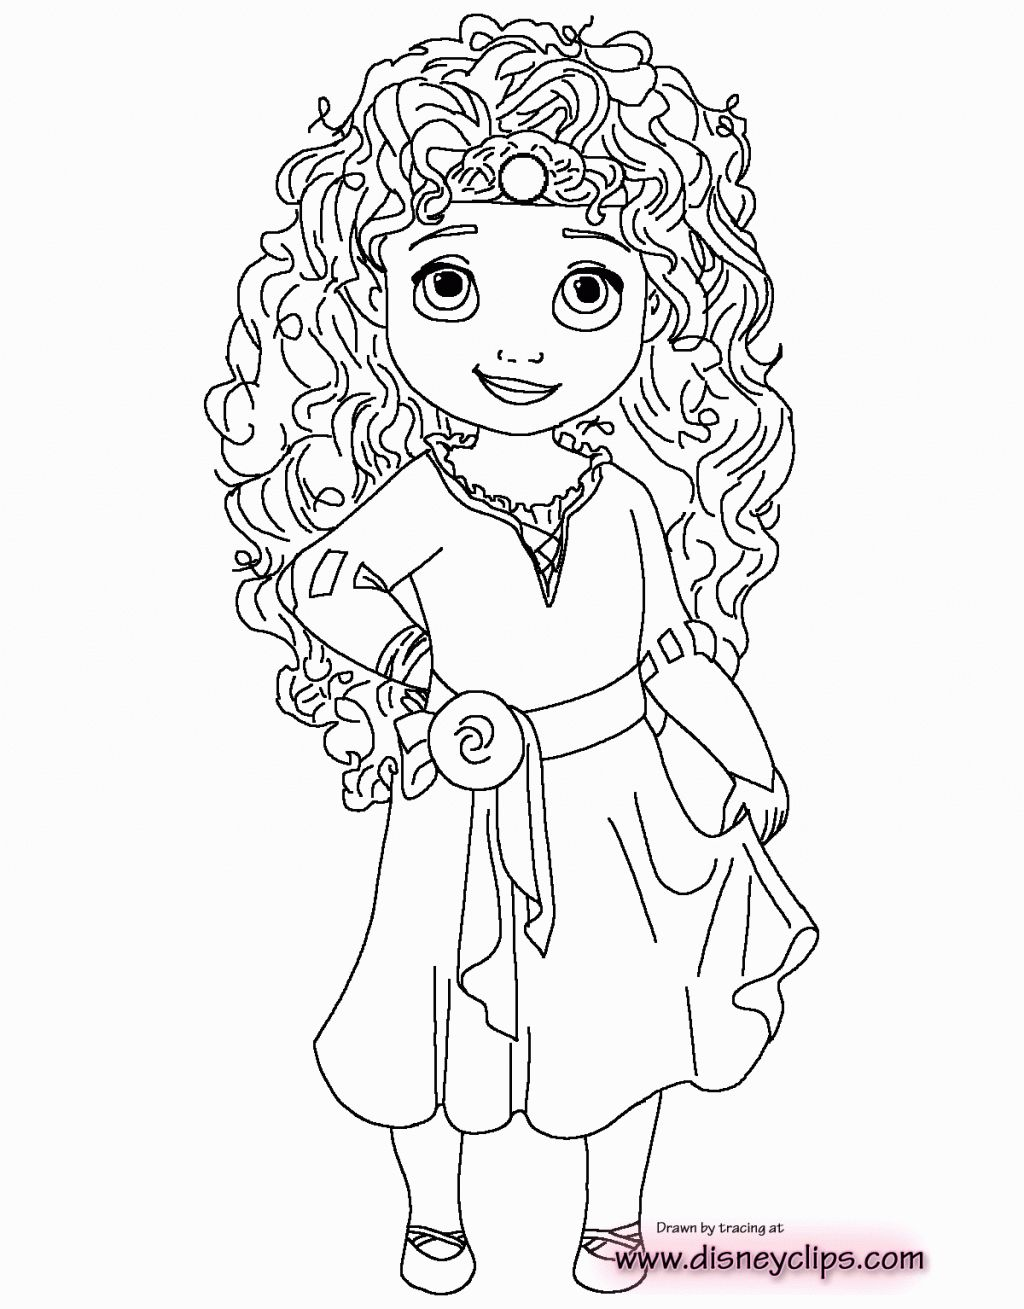 Pin On Princess Coloring Pages [ 1309 x 1024 Pixel ]